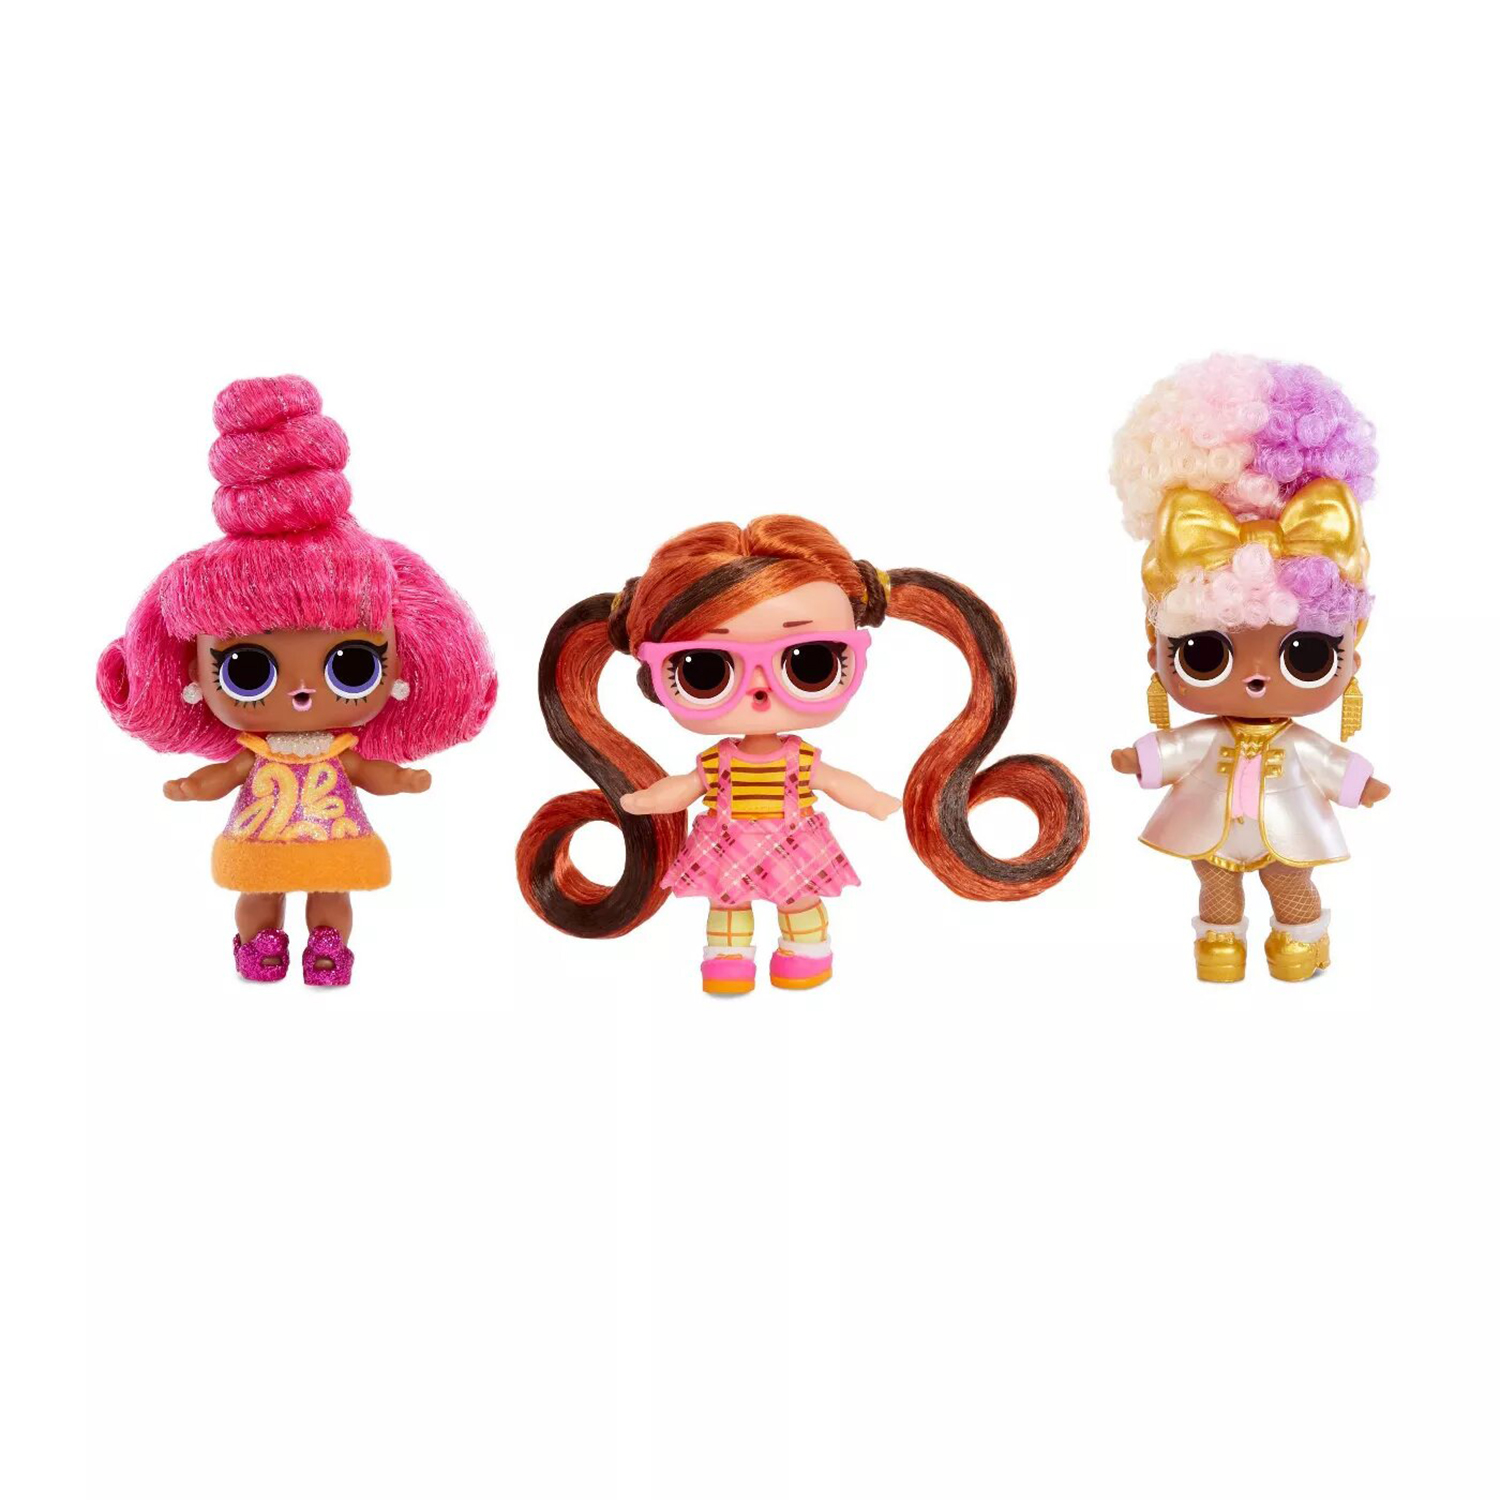 L.O.L. Surprise! #Hairvibes Dolls